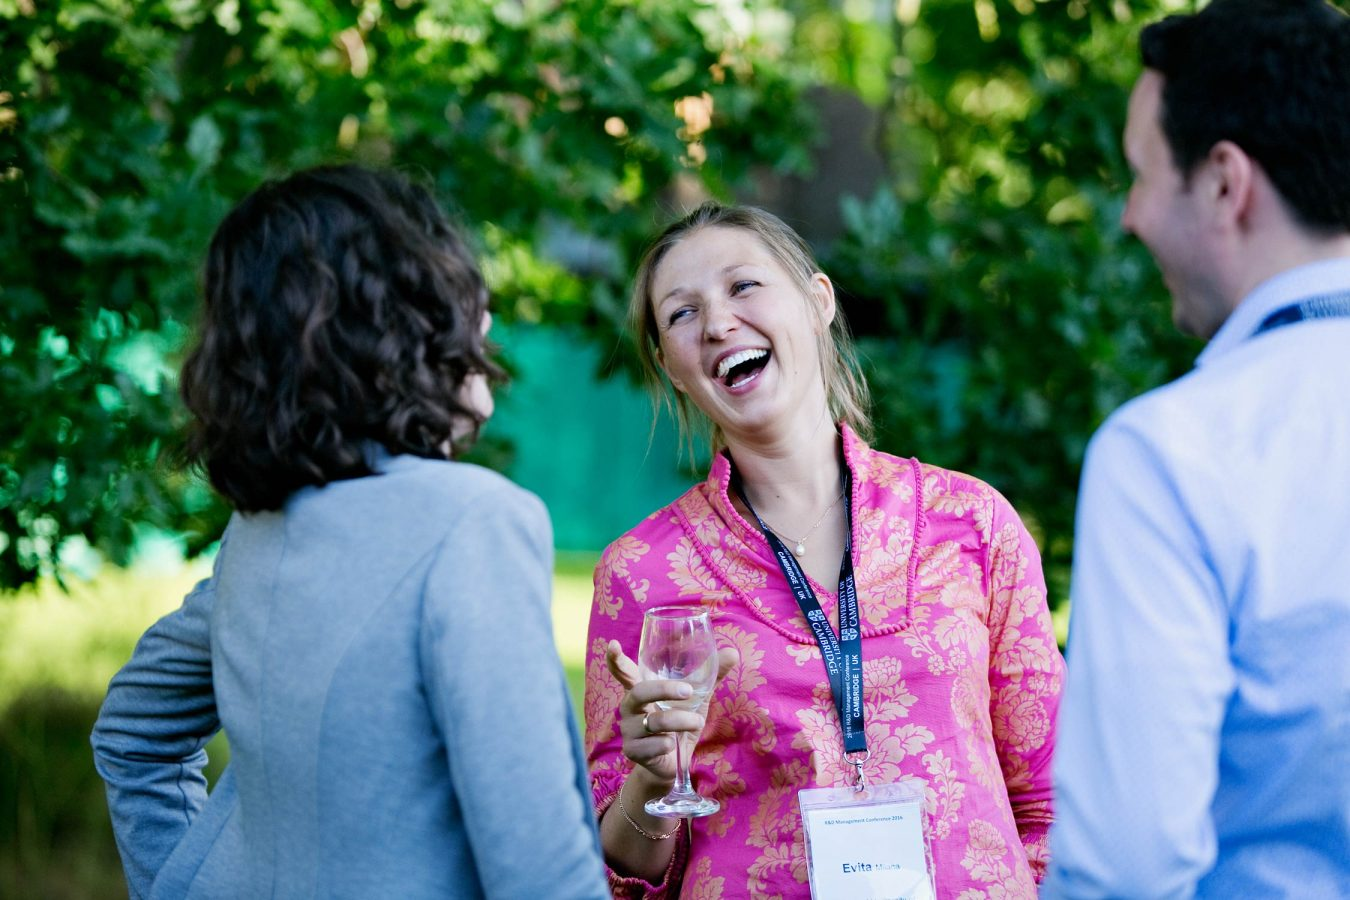 university-of-cambridge-conference-laughing-delegates